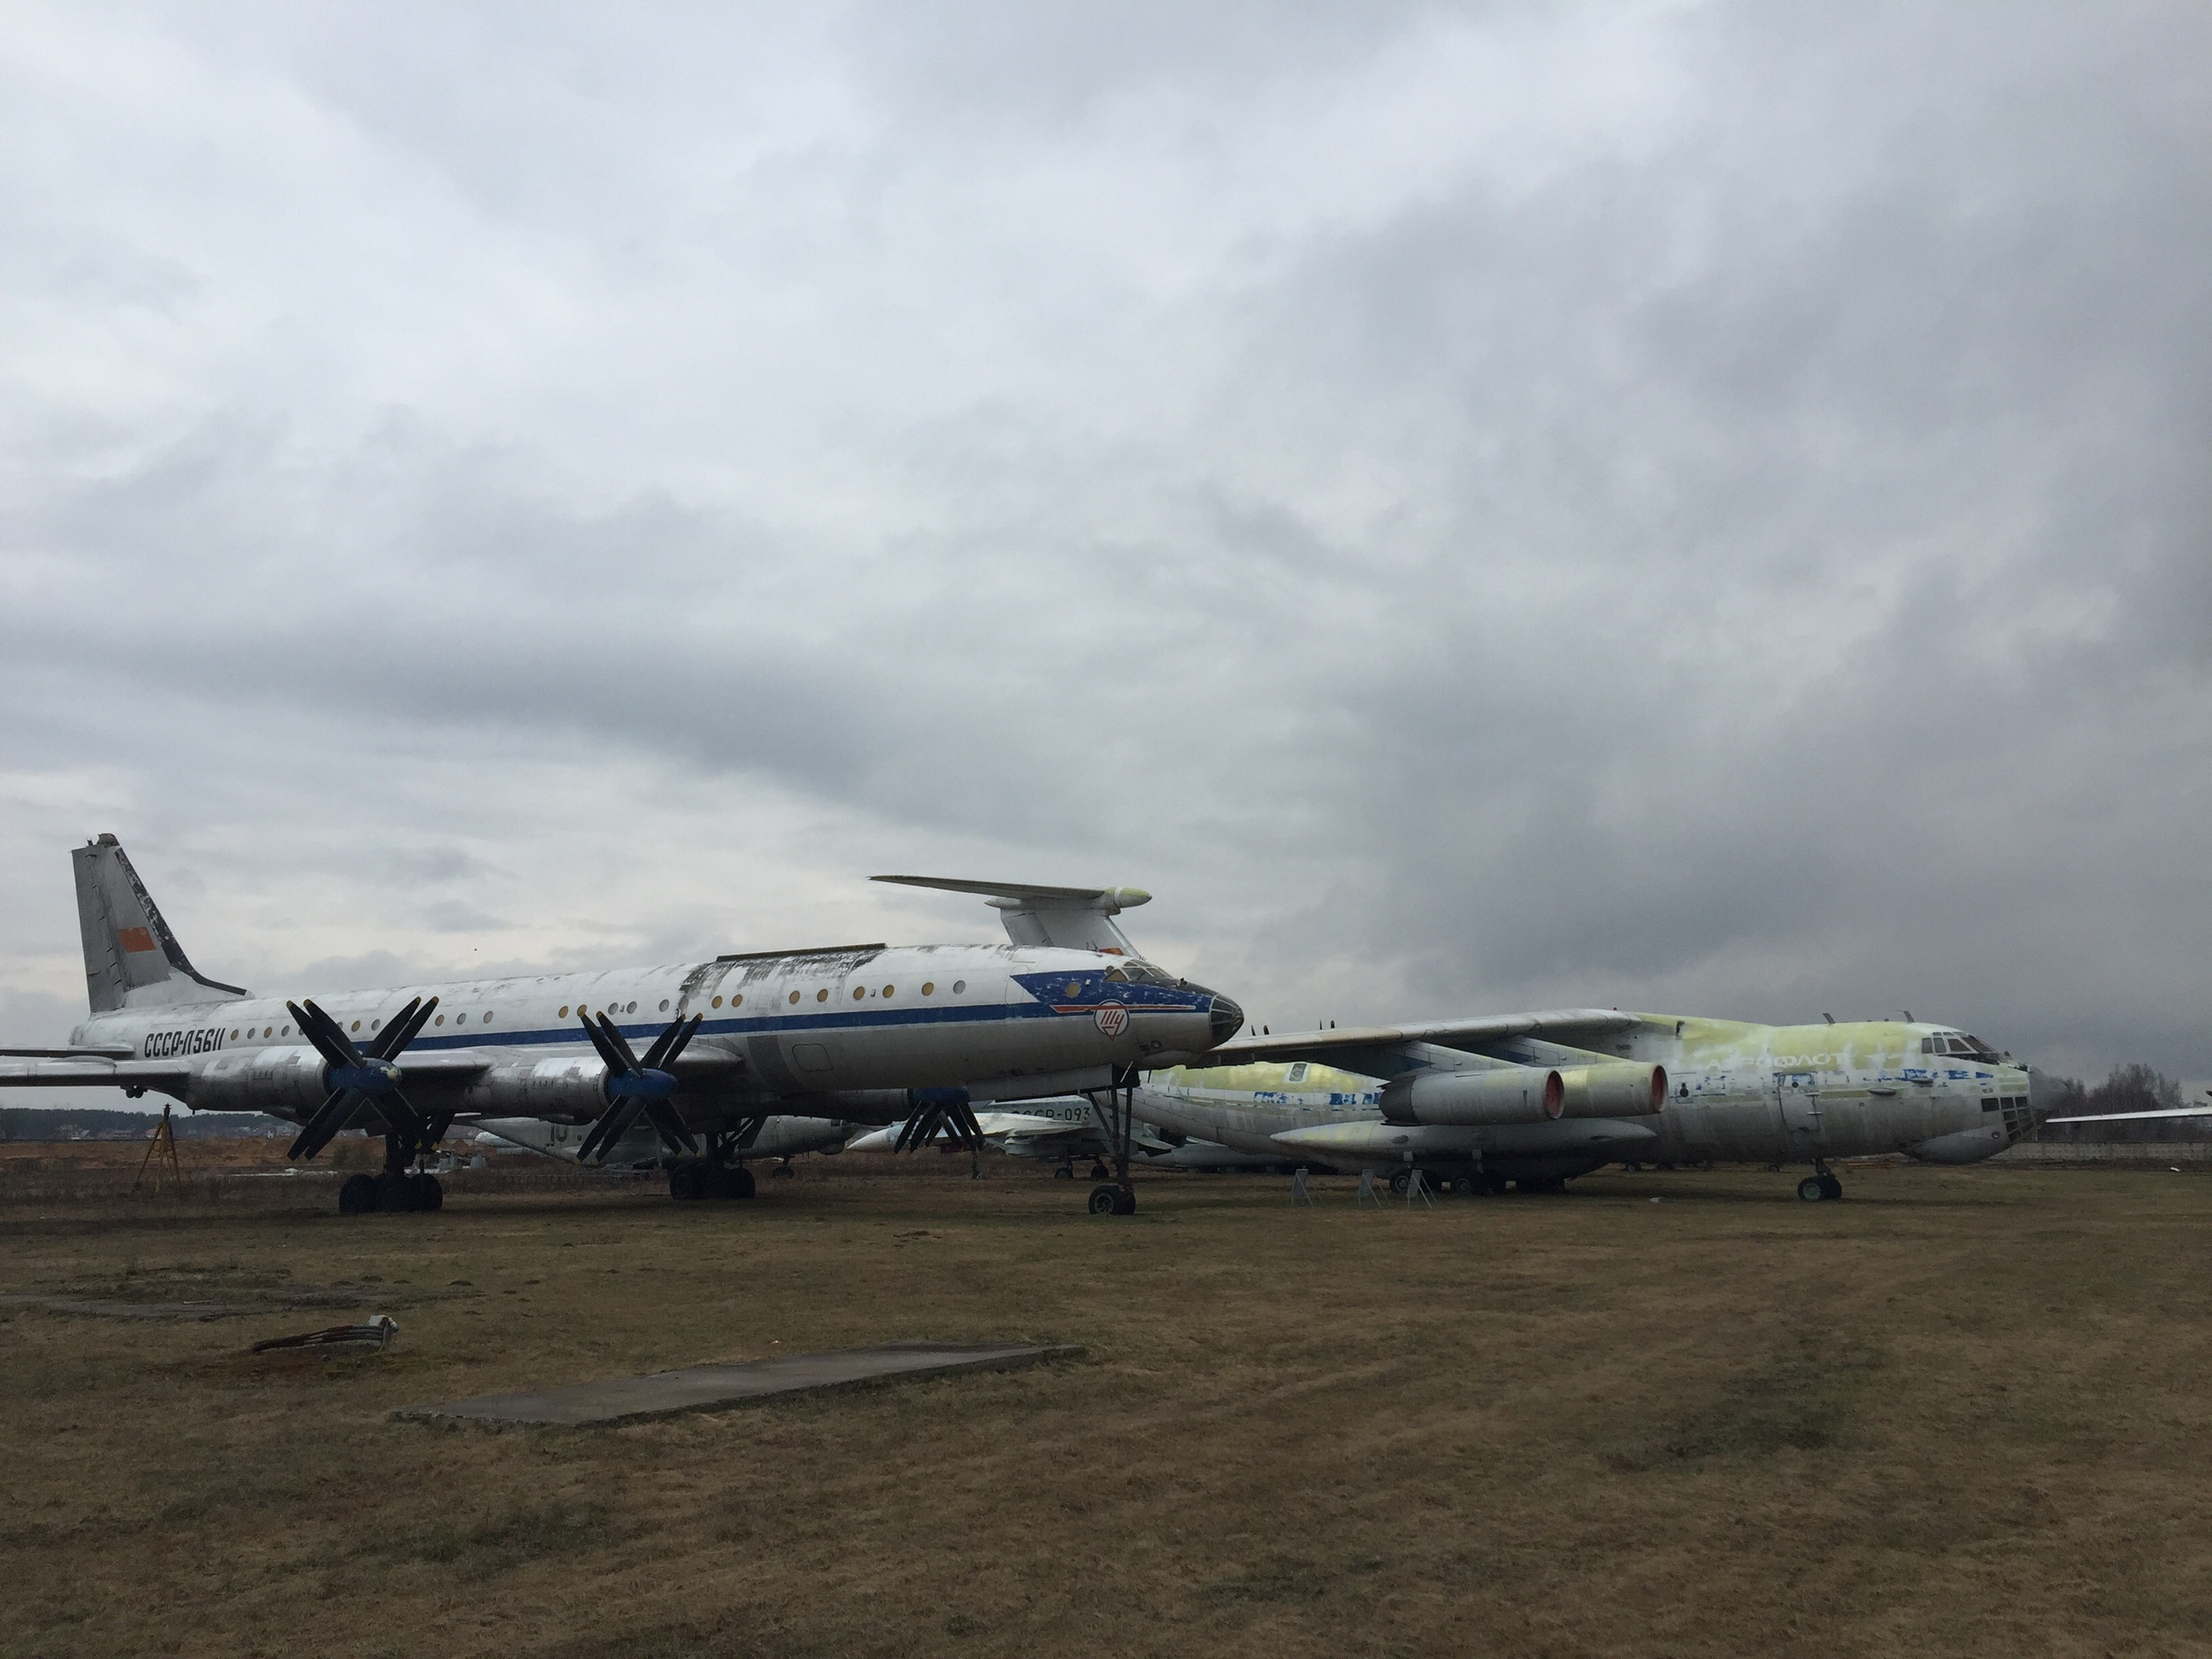 A Tupolev Tu-114 (foreground) and an Il-76 (background)